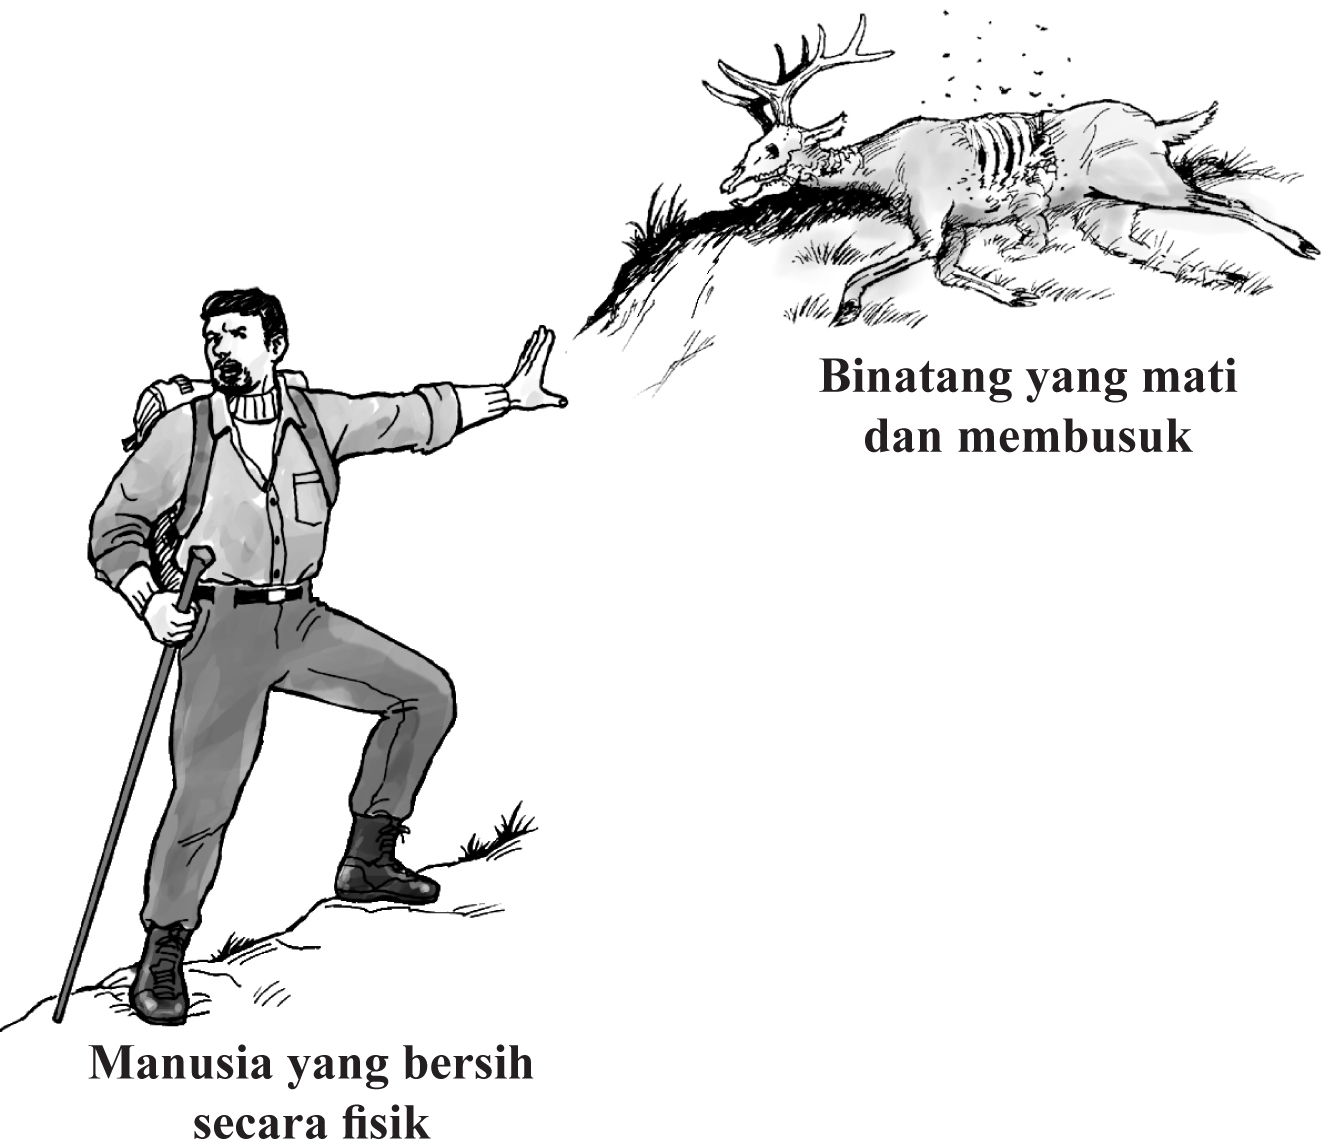 Gospel_Indonesian_p_4_Woodsman_Deer